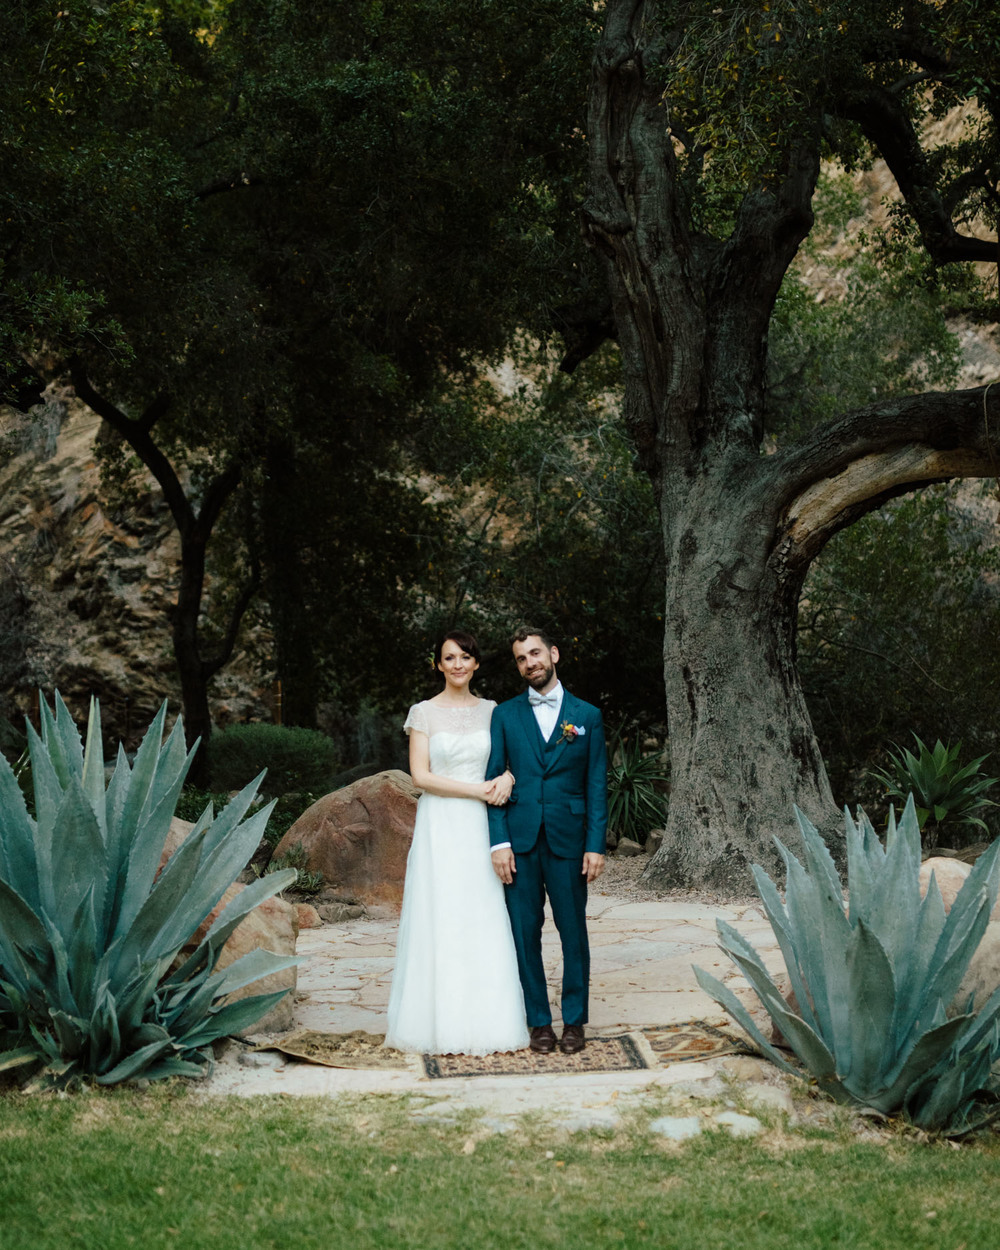 Ojai Wedding Photographer, Calliote Canyon Wedding - The Gathering Season x weareleoandkat 066.JPG